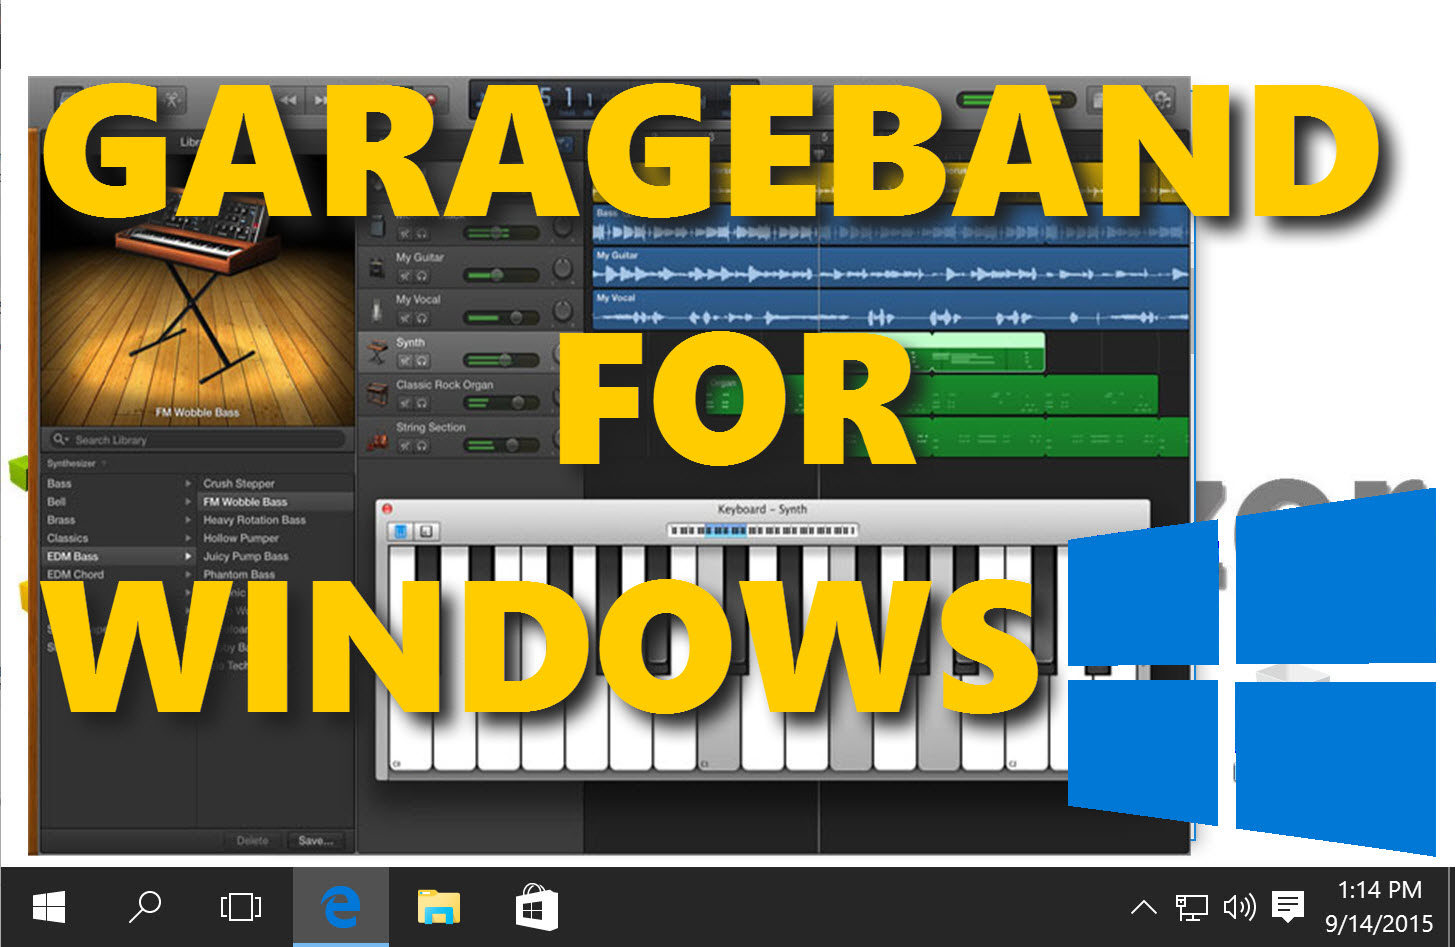 Garageband Fade In Garageband For Windows How To Run It On A Pc And 11 Alternatives